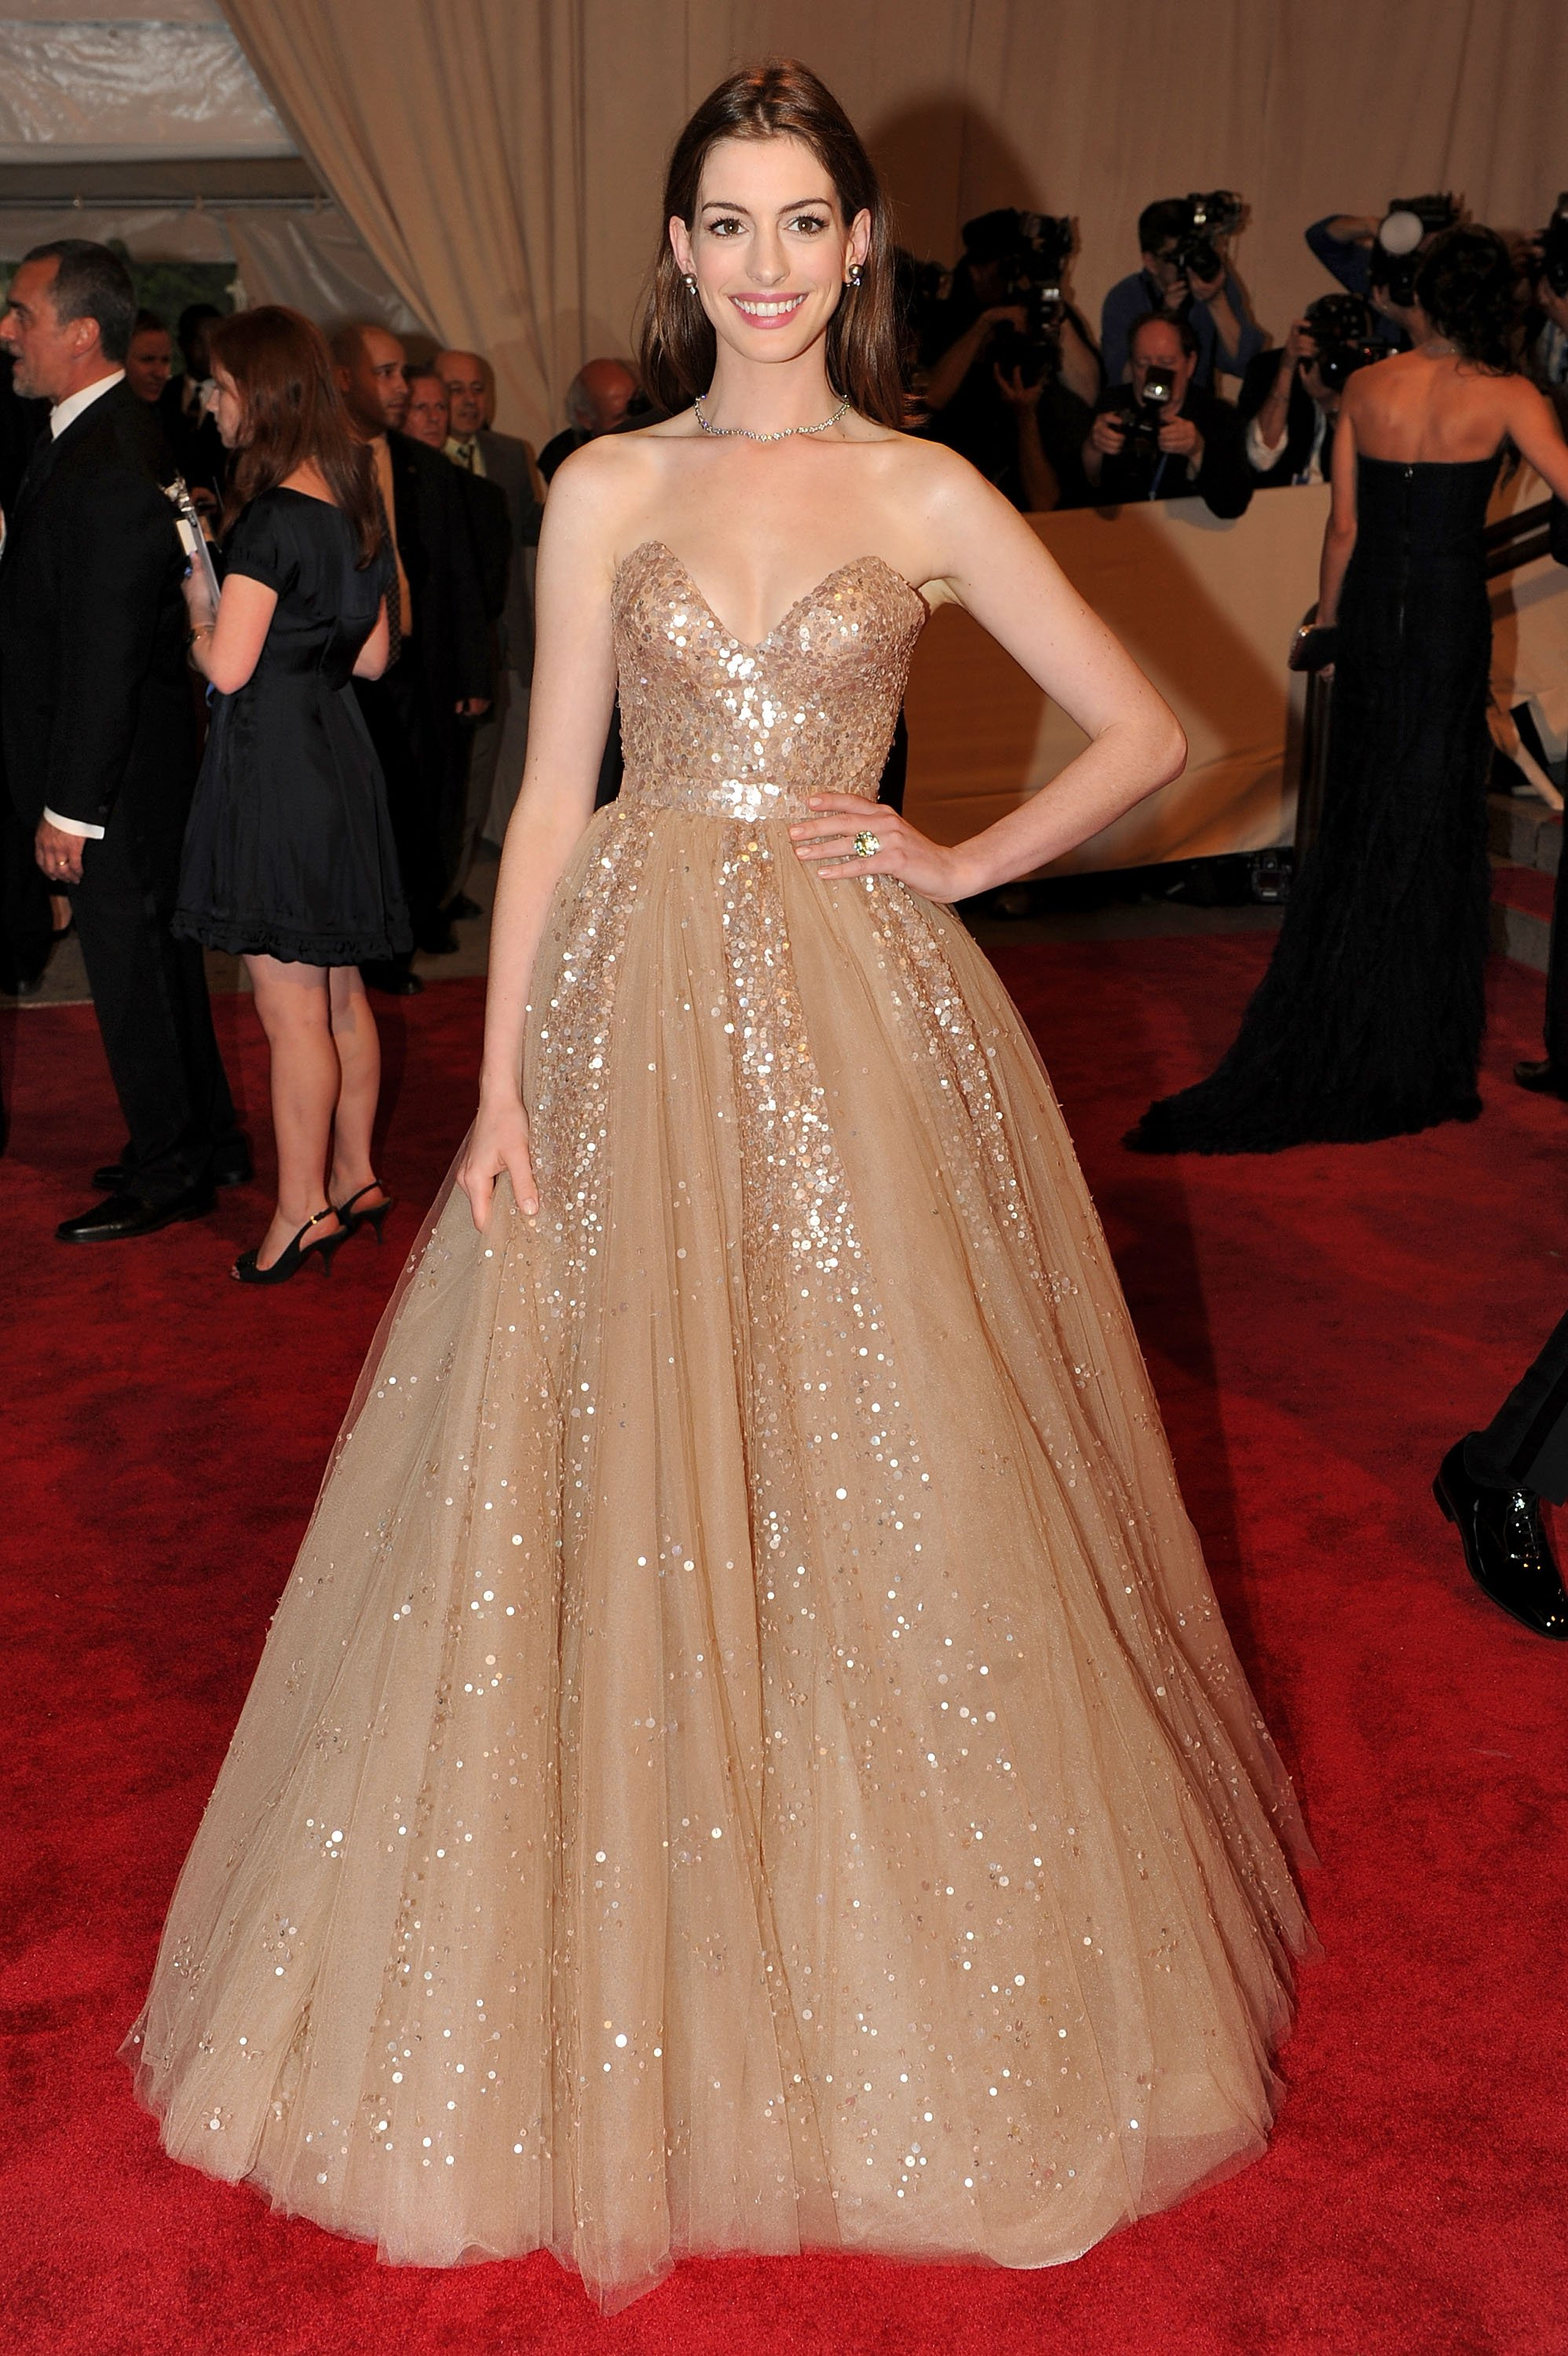 anne hathaway at met gala canadian beauty. Black Bedroom Furniture Sets. Home Design Ideas